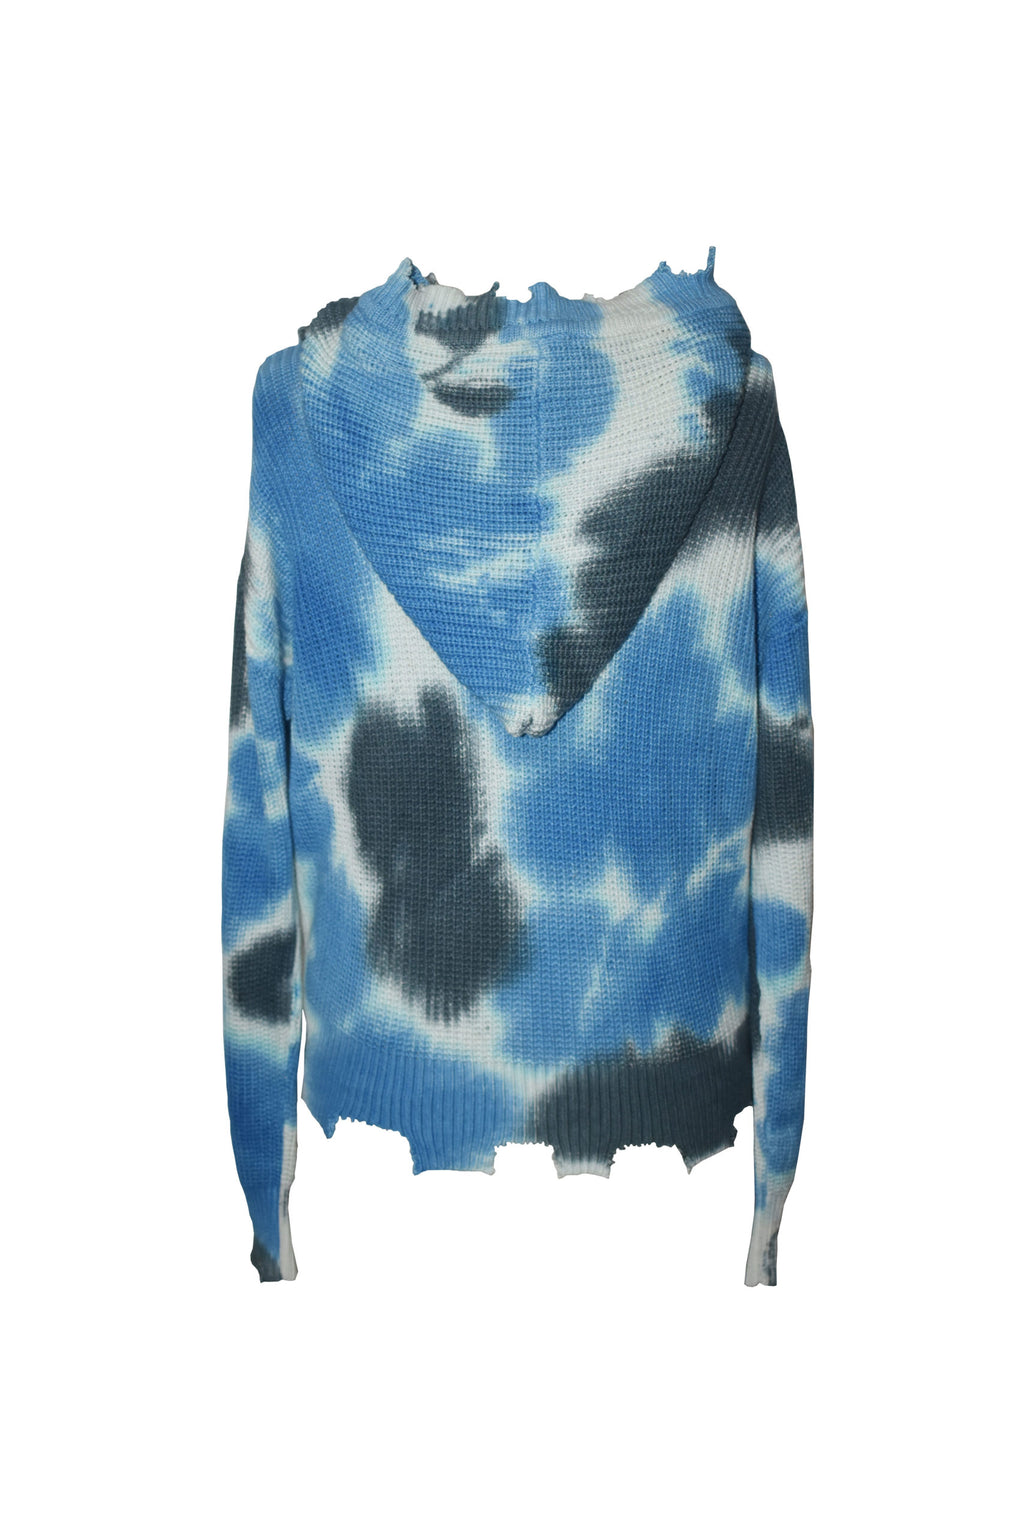 *Blue Tiedye Zip Cardigan*